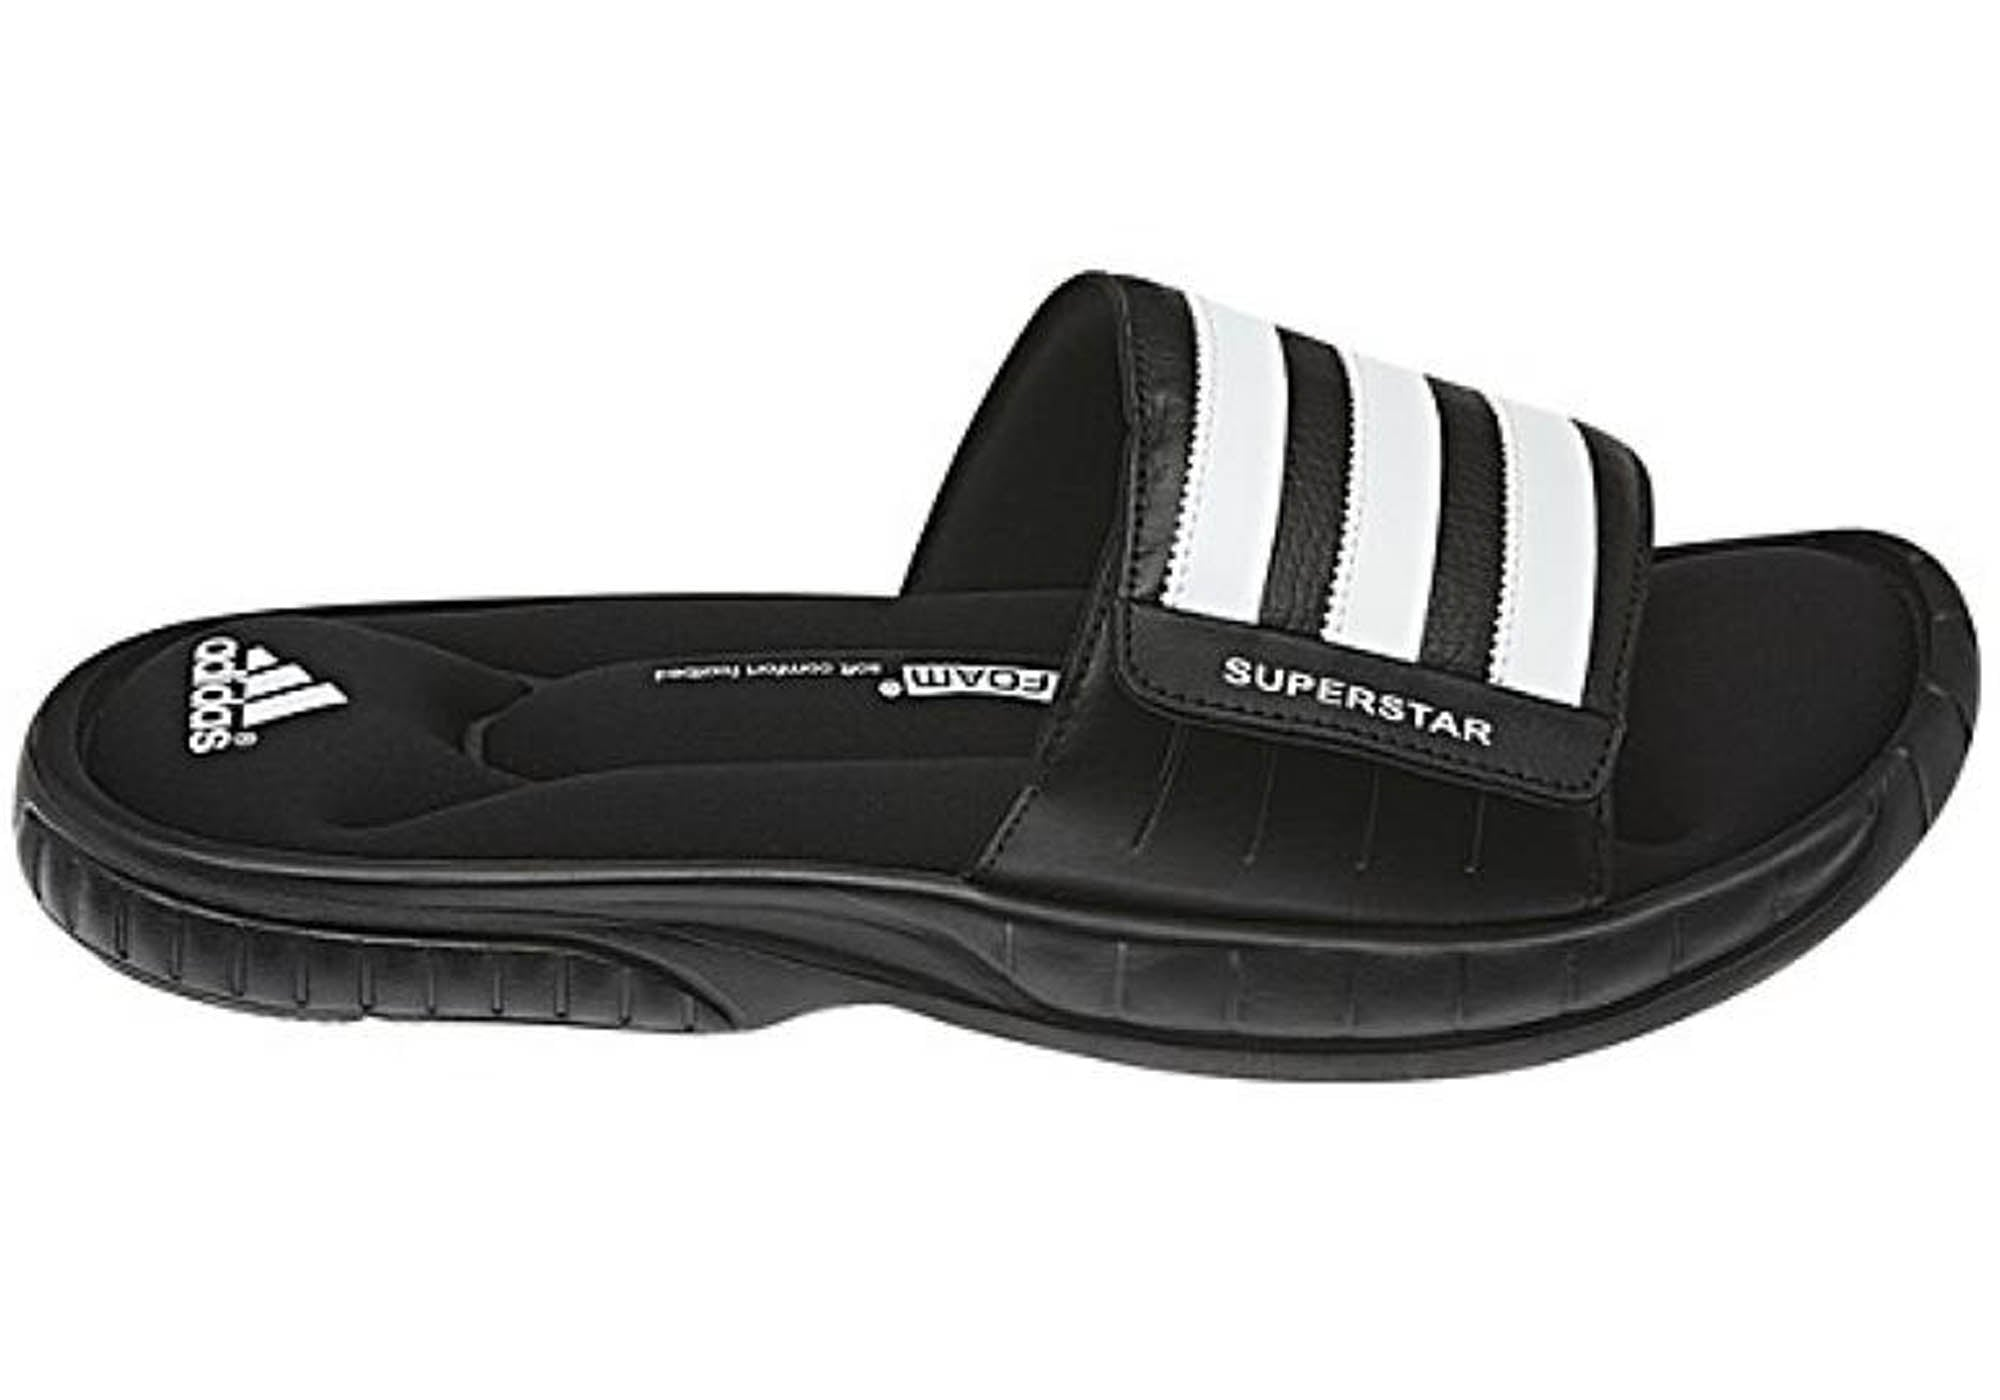 eada4bb0b460 Home Adidas Mens Comfortable Superstar 3G Slide Cushioned Sports Sandals.  Black